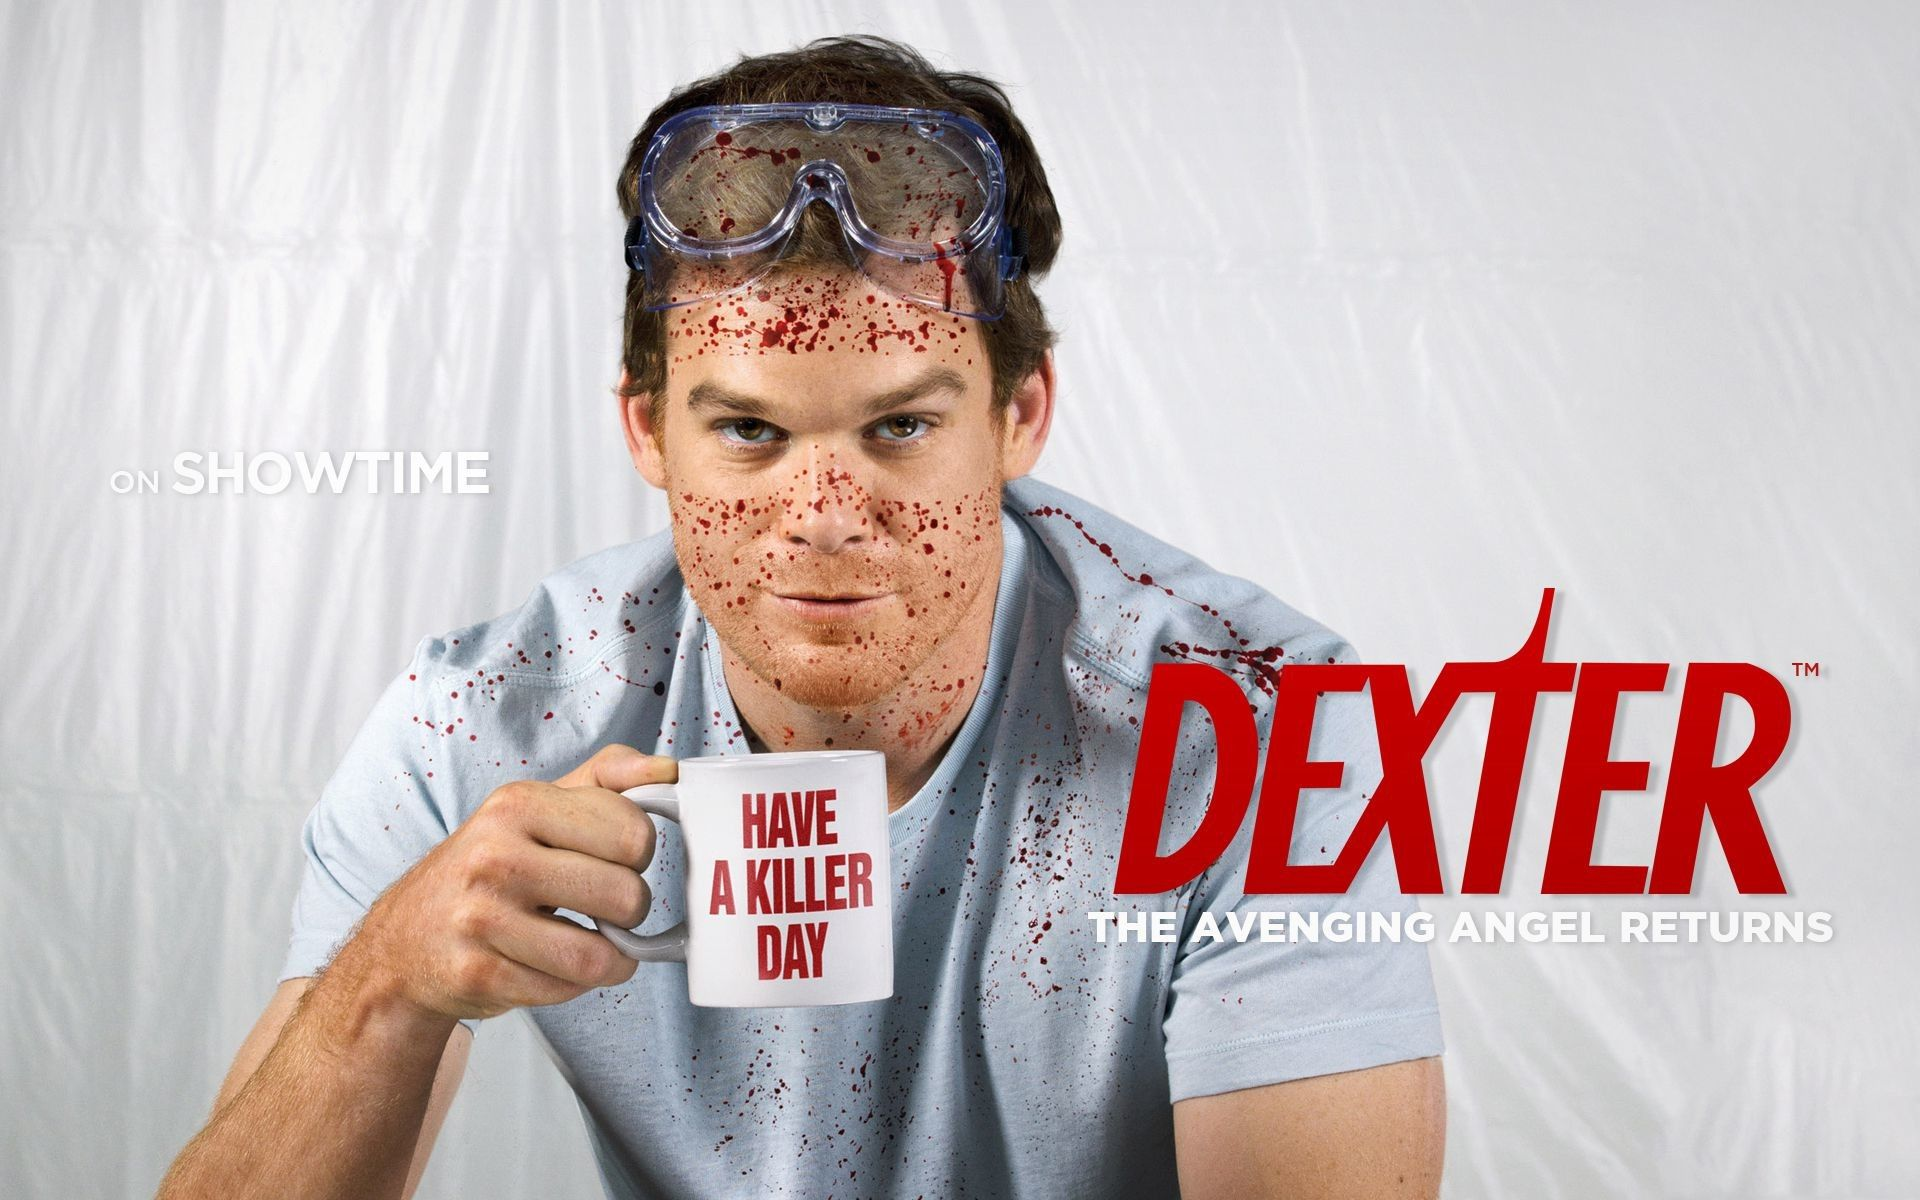 Dexter Wallpaper 1080p 71 Images Dexter Dexter Wallpaper Dexter Seasons